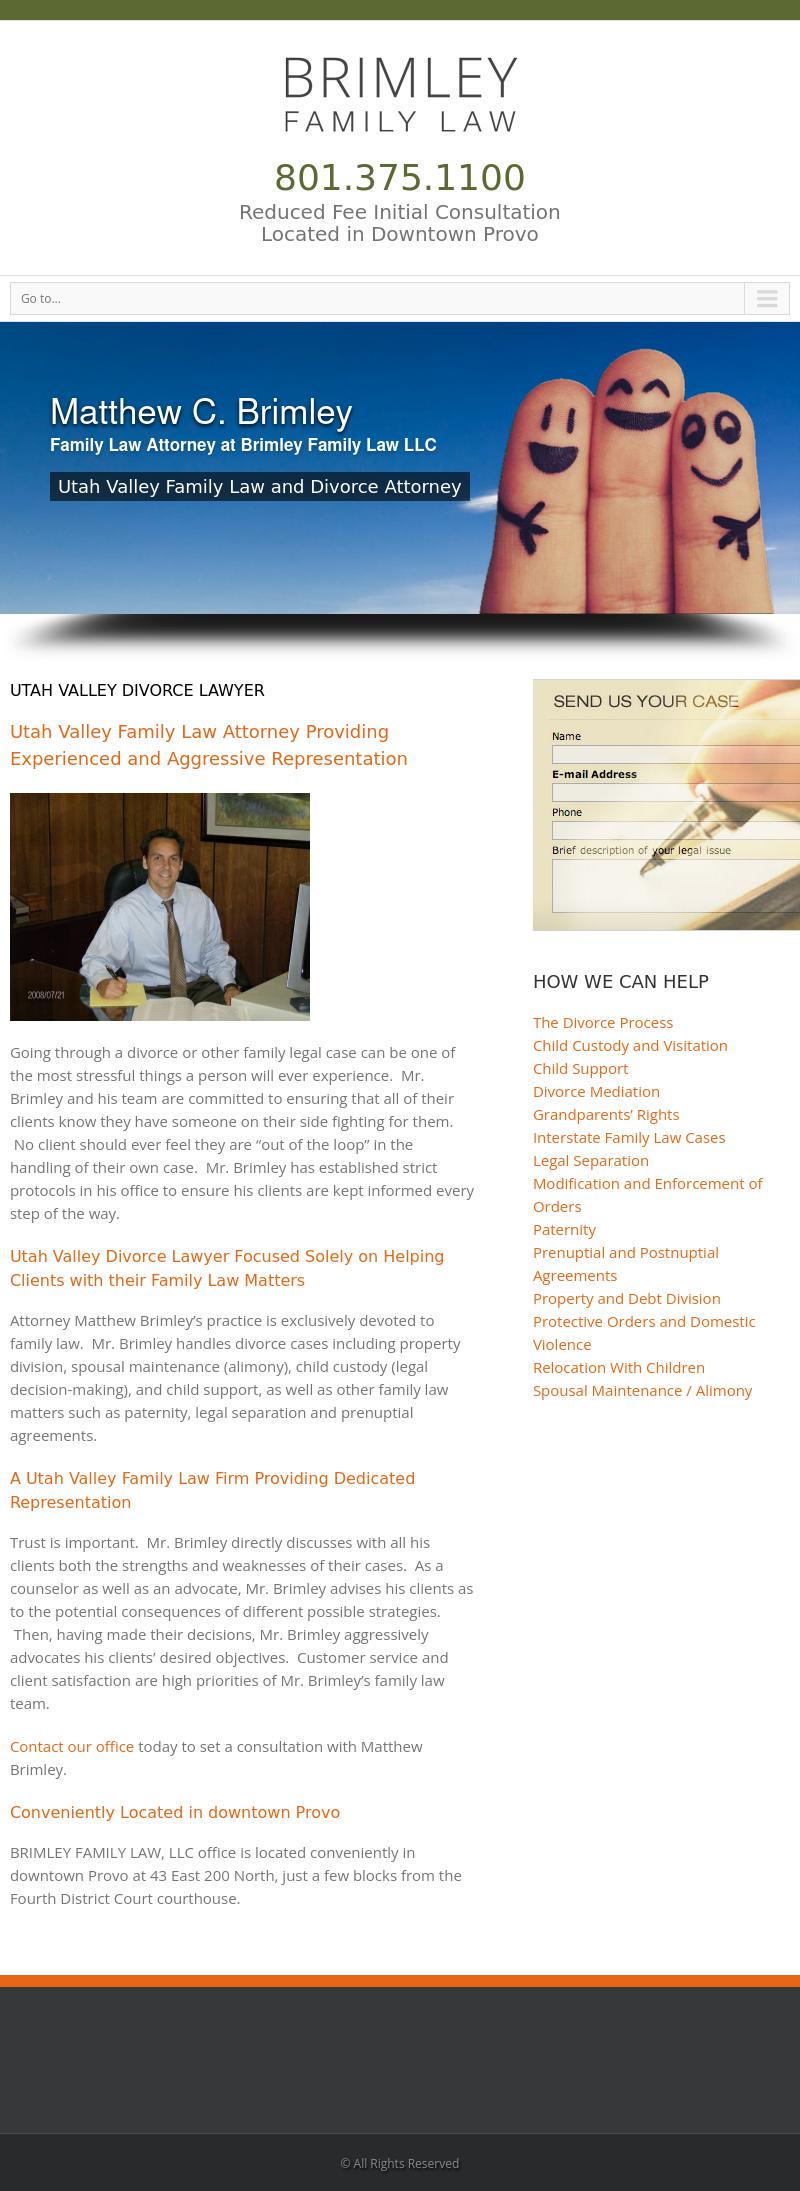 Brimley Family Law - Provo UT Lawyers